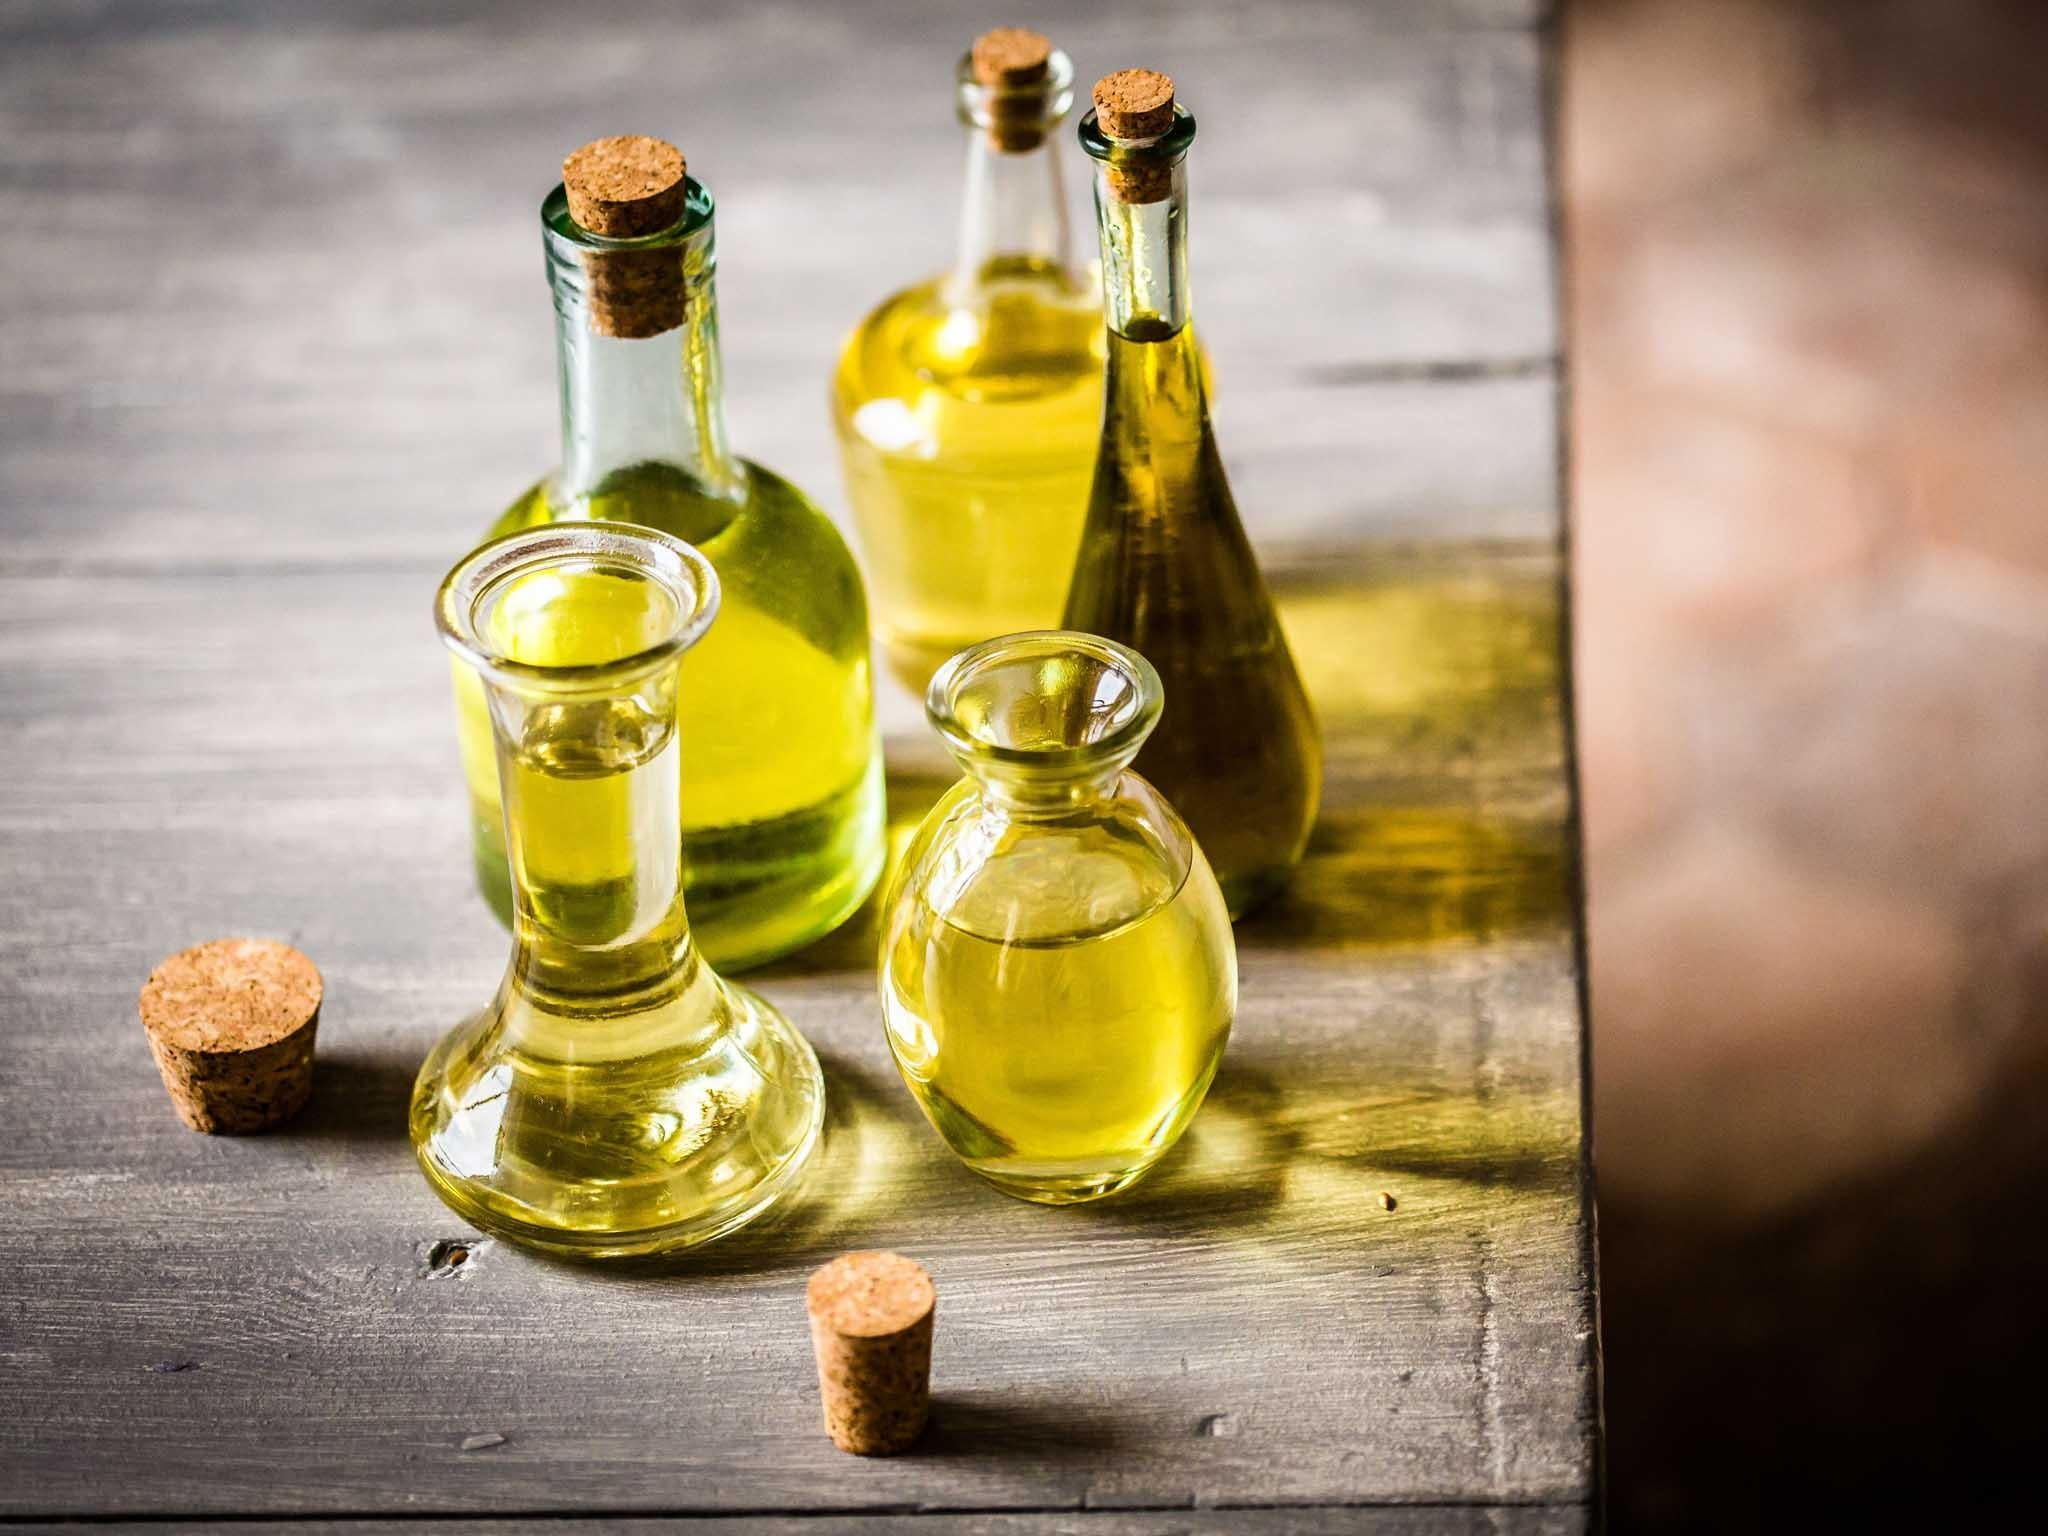 Scientists discover vegetable oil that 'helps reduce stomach fat'